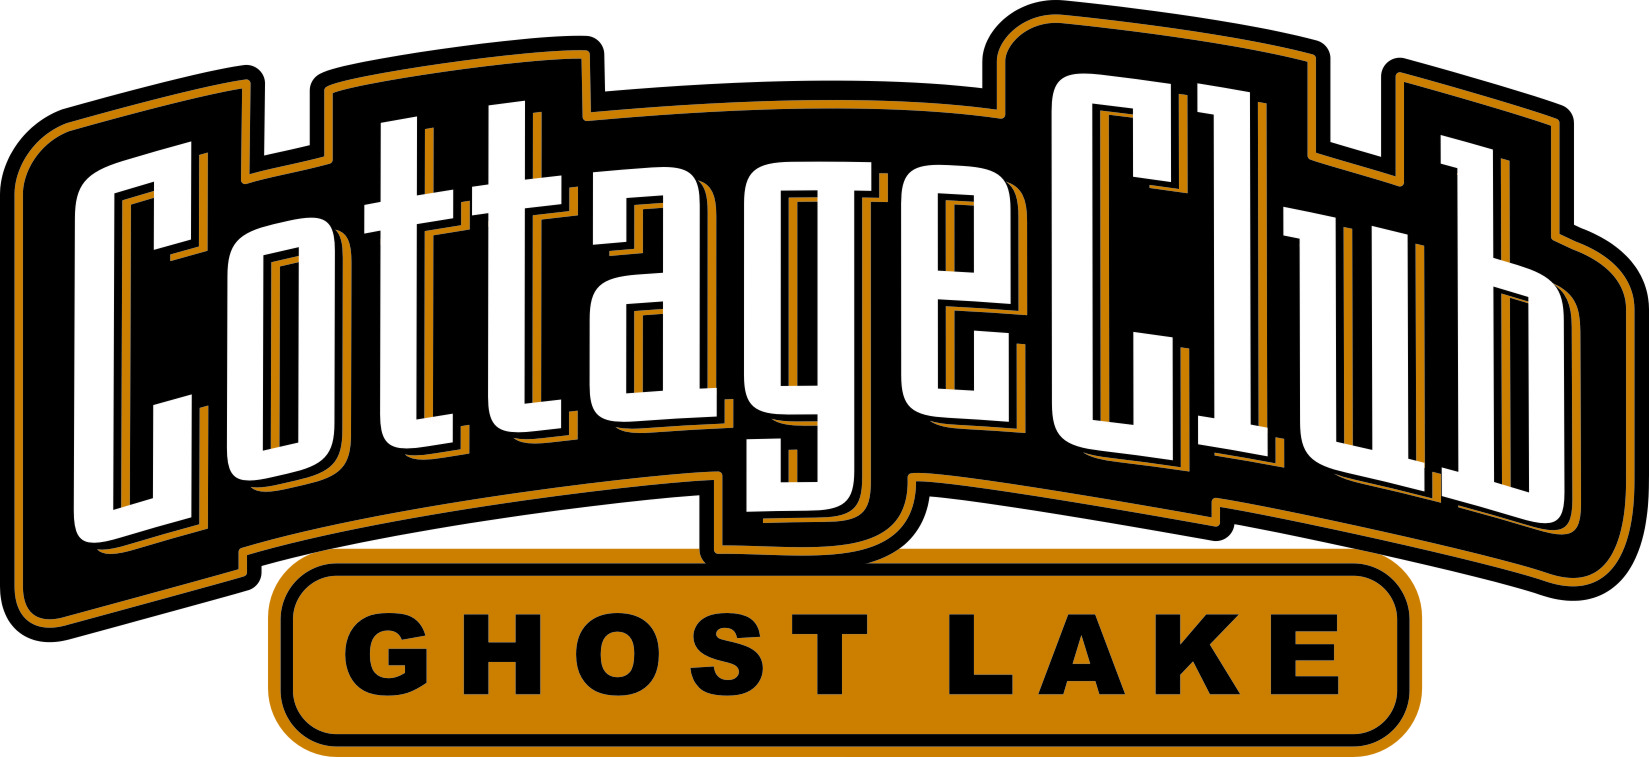 The CottageClub Logo - CottageClub at Ghost Lake